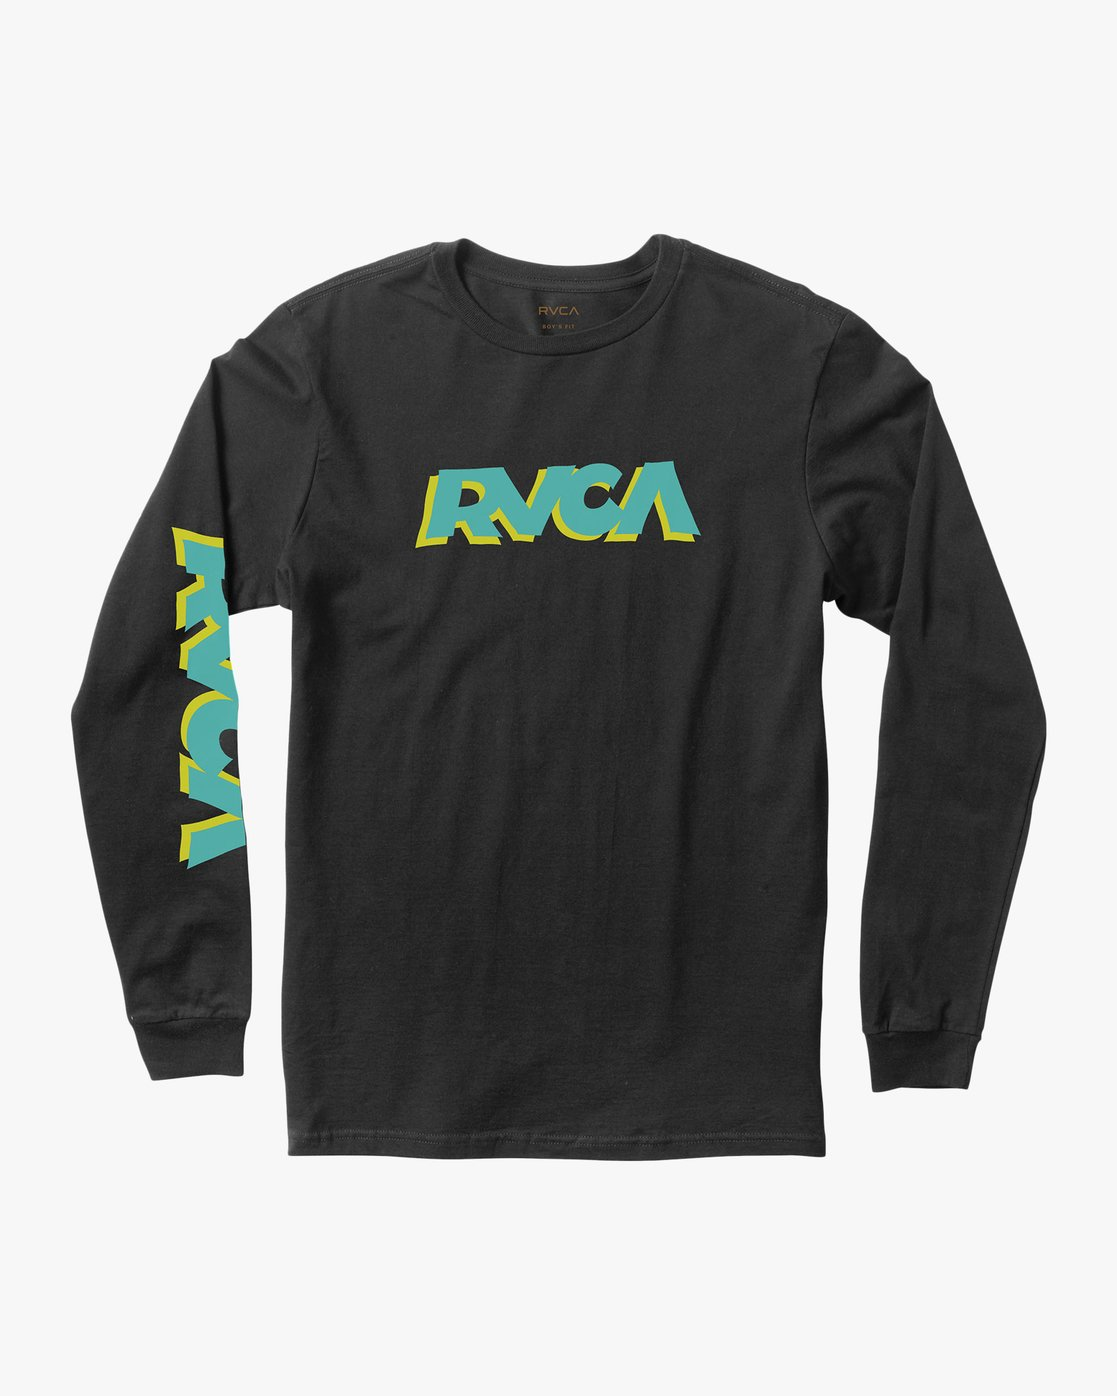 0 Boy's RVCA Slant Long Sleeve T-Shirt Black B453QRRS RVCA